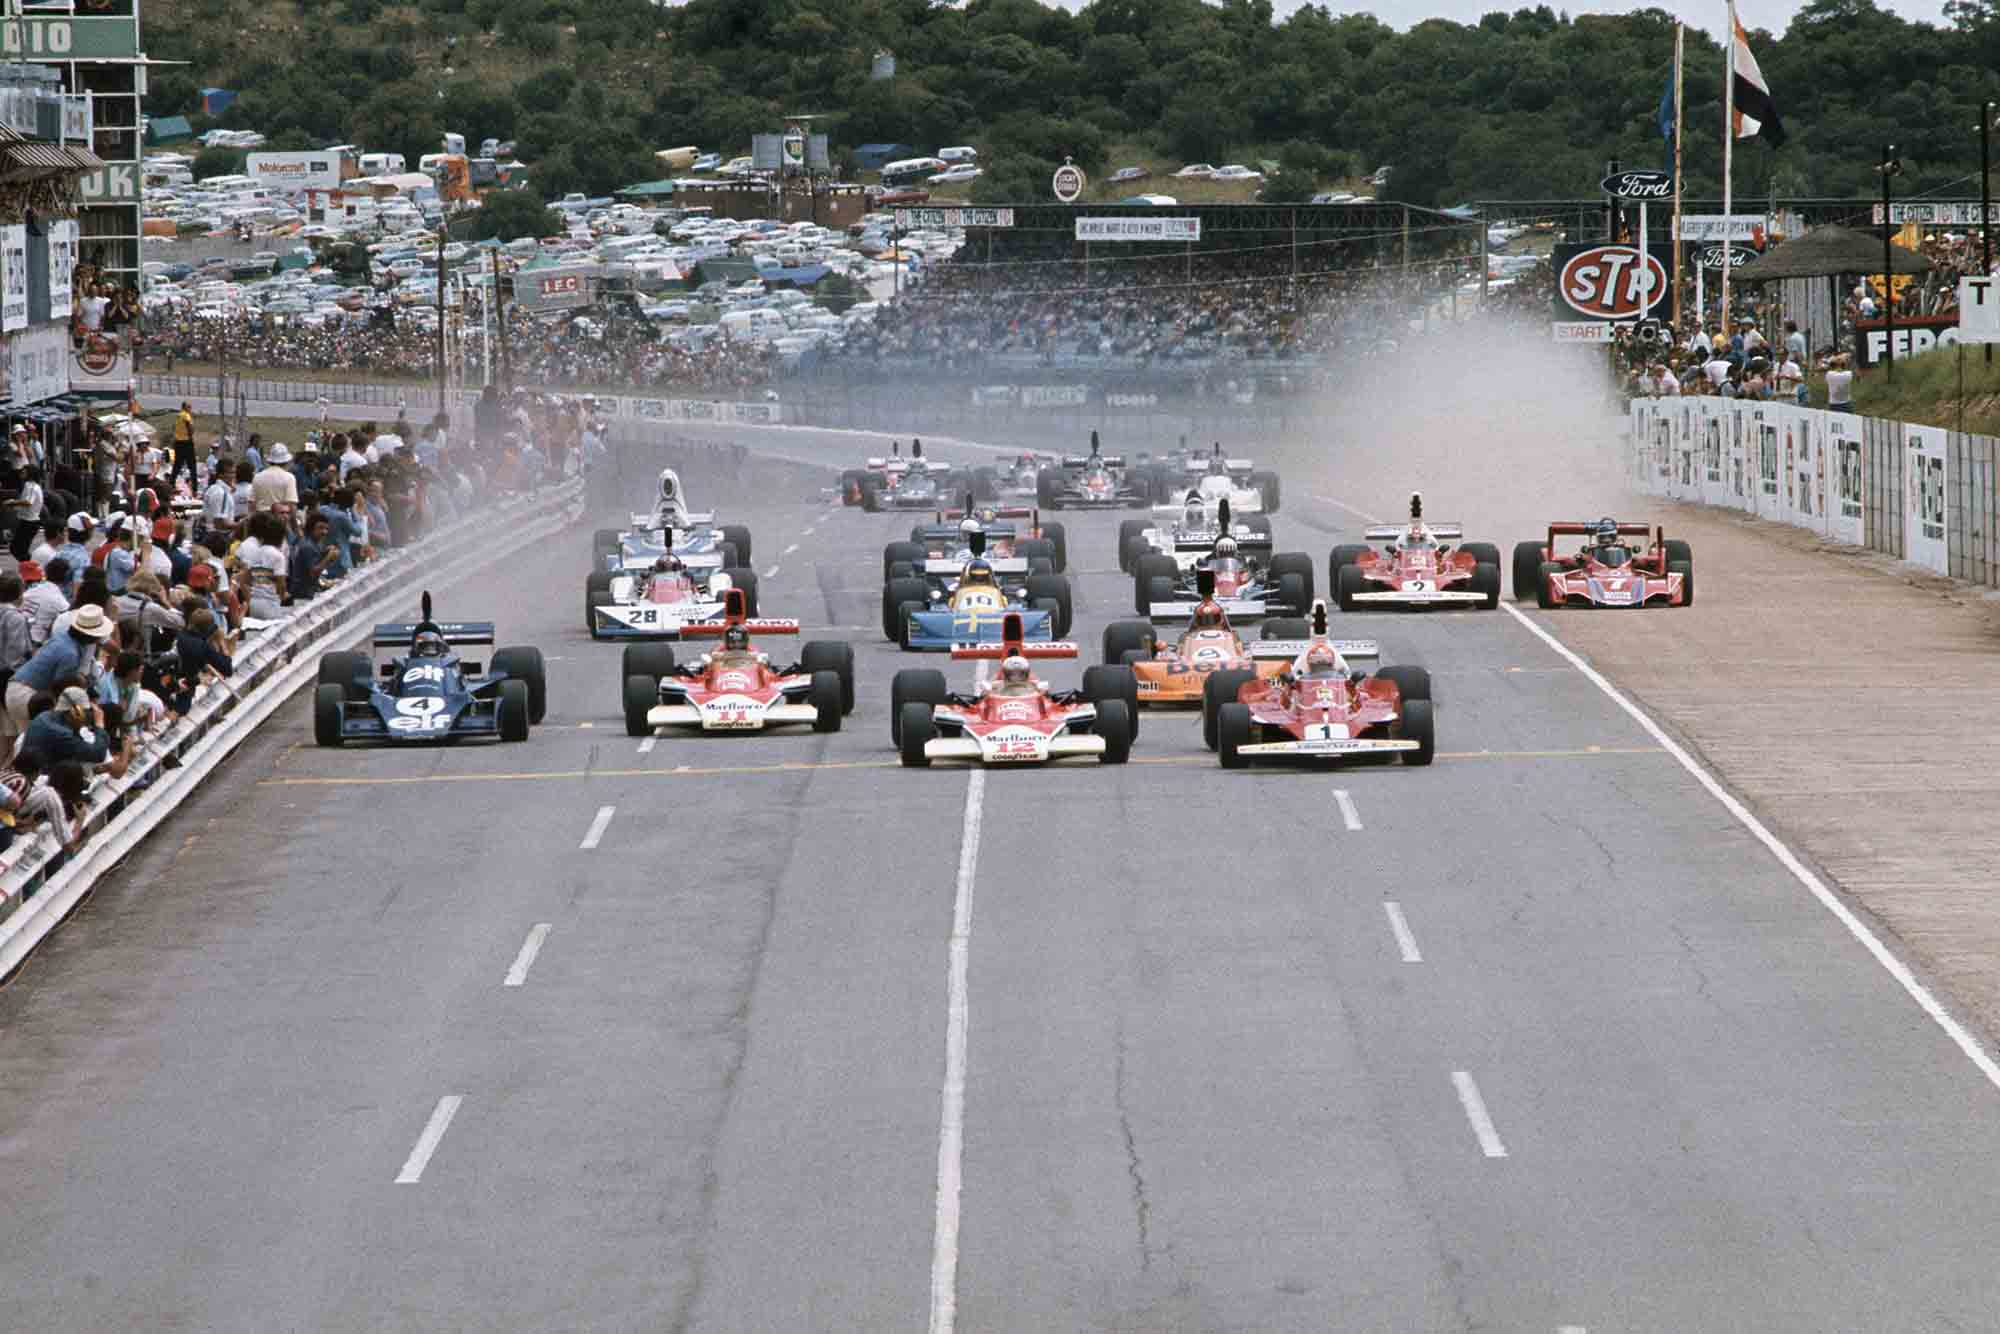 Niki Lauda's Ferrari leads the field at 1976 South African Grand Prix